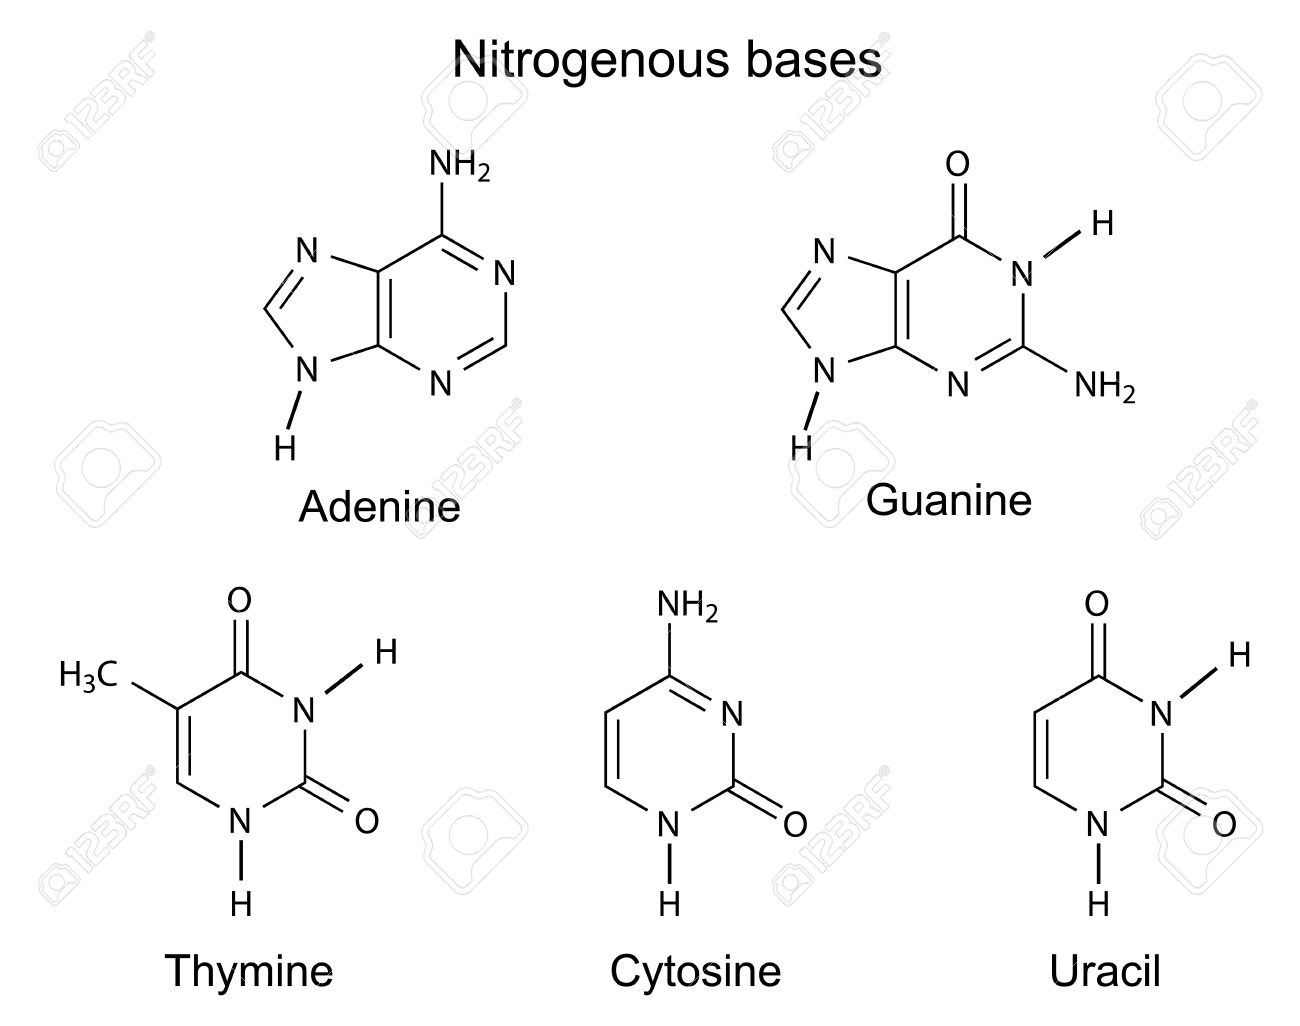 hight resolution of structural formulas of purine and pyrimidine nitrogenous bases of dna illustration vector isolated